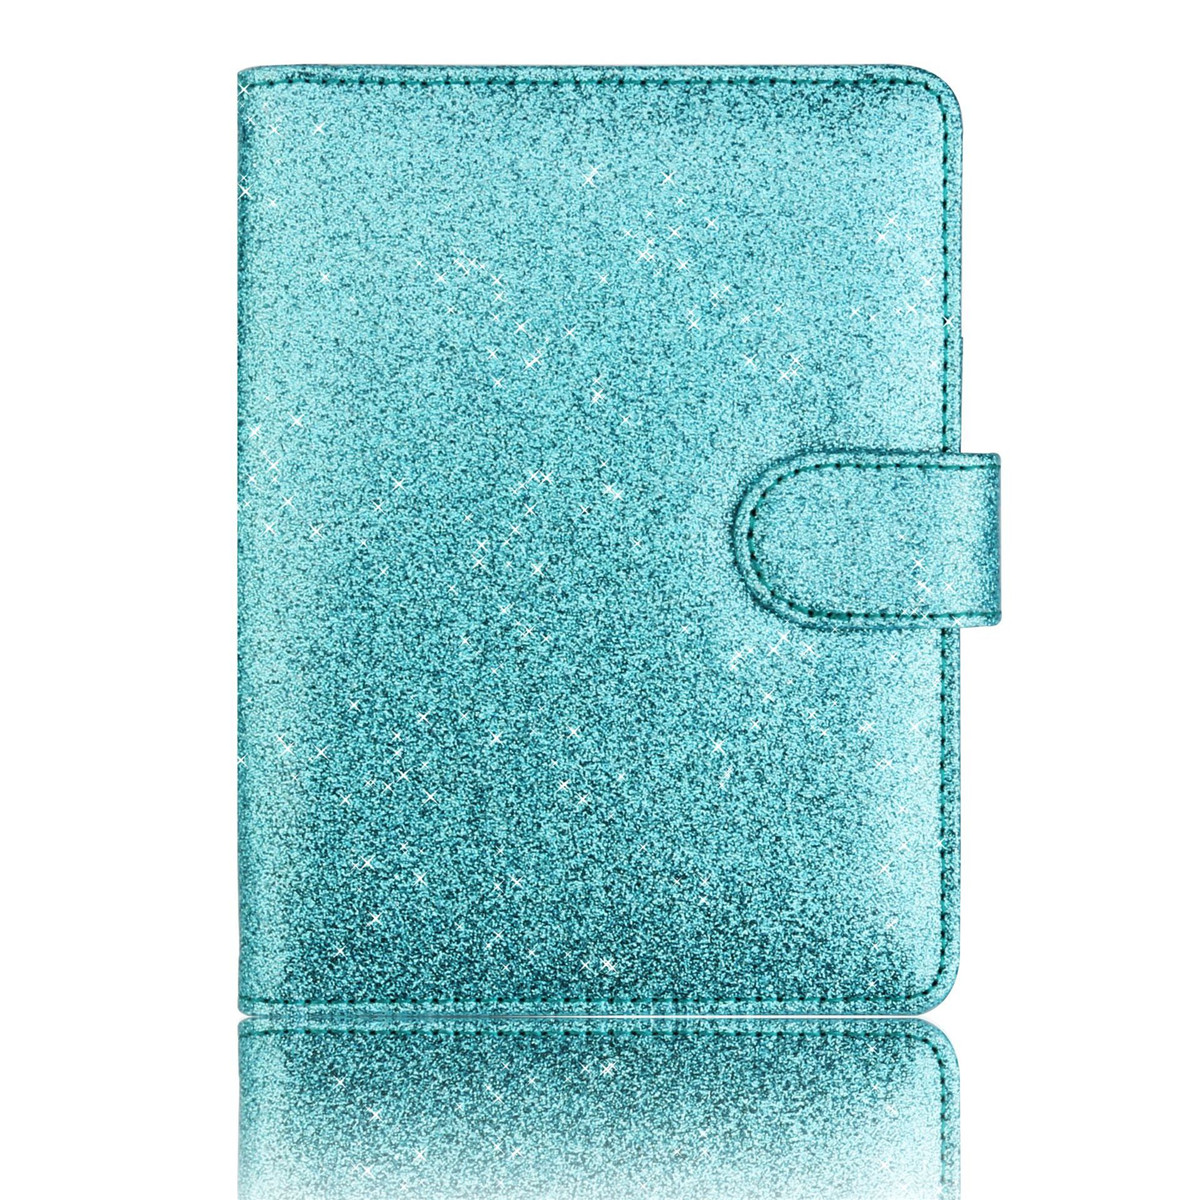 RFID-Bling-Leather-Passport-Case-Holder-Blocking-Travel-Credit-ID-Card-Wallet